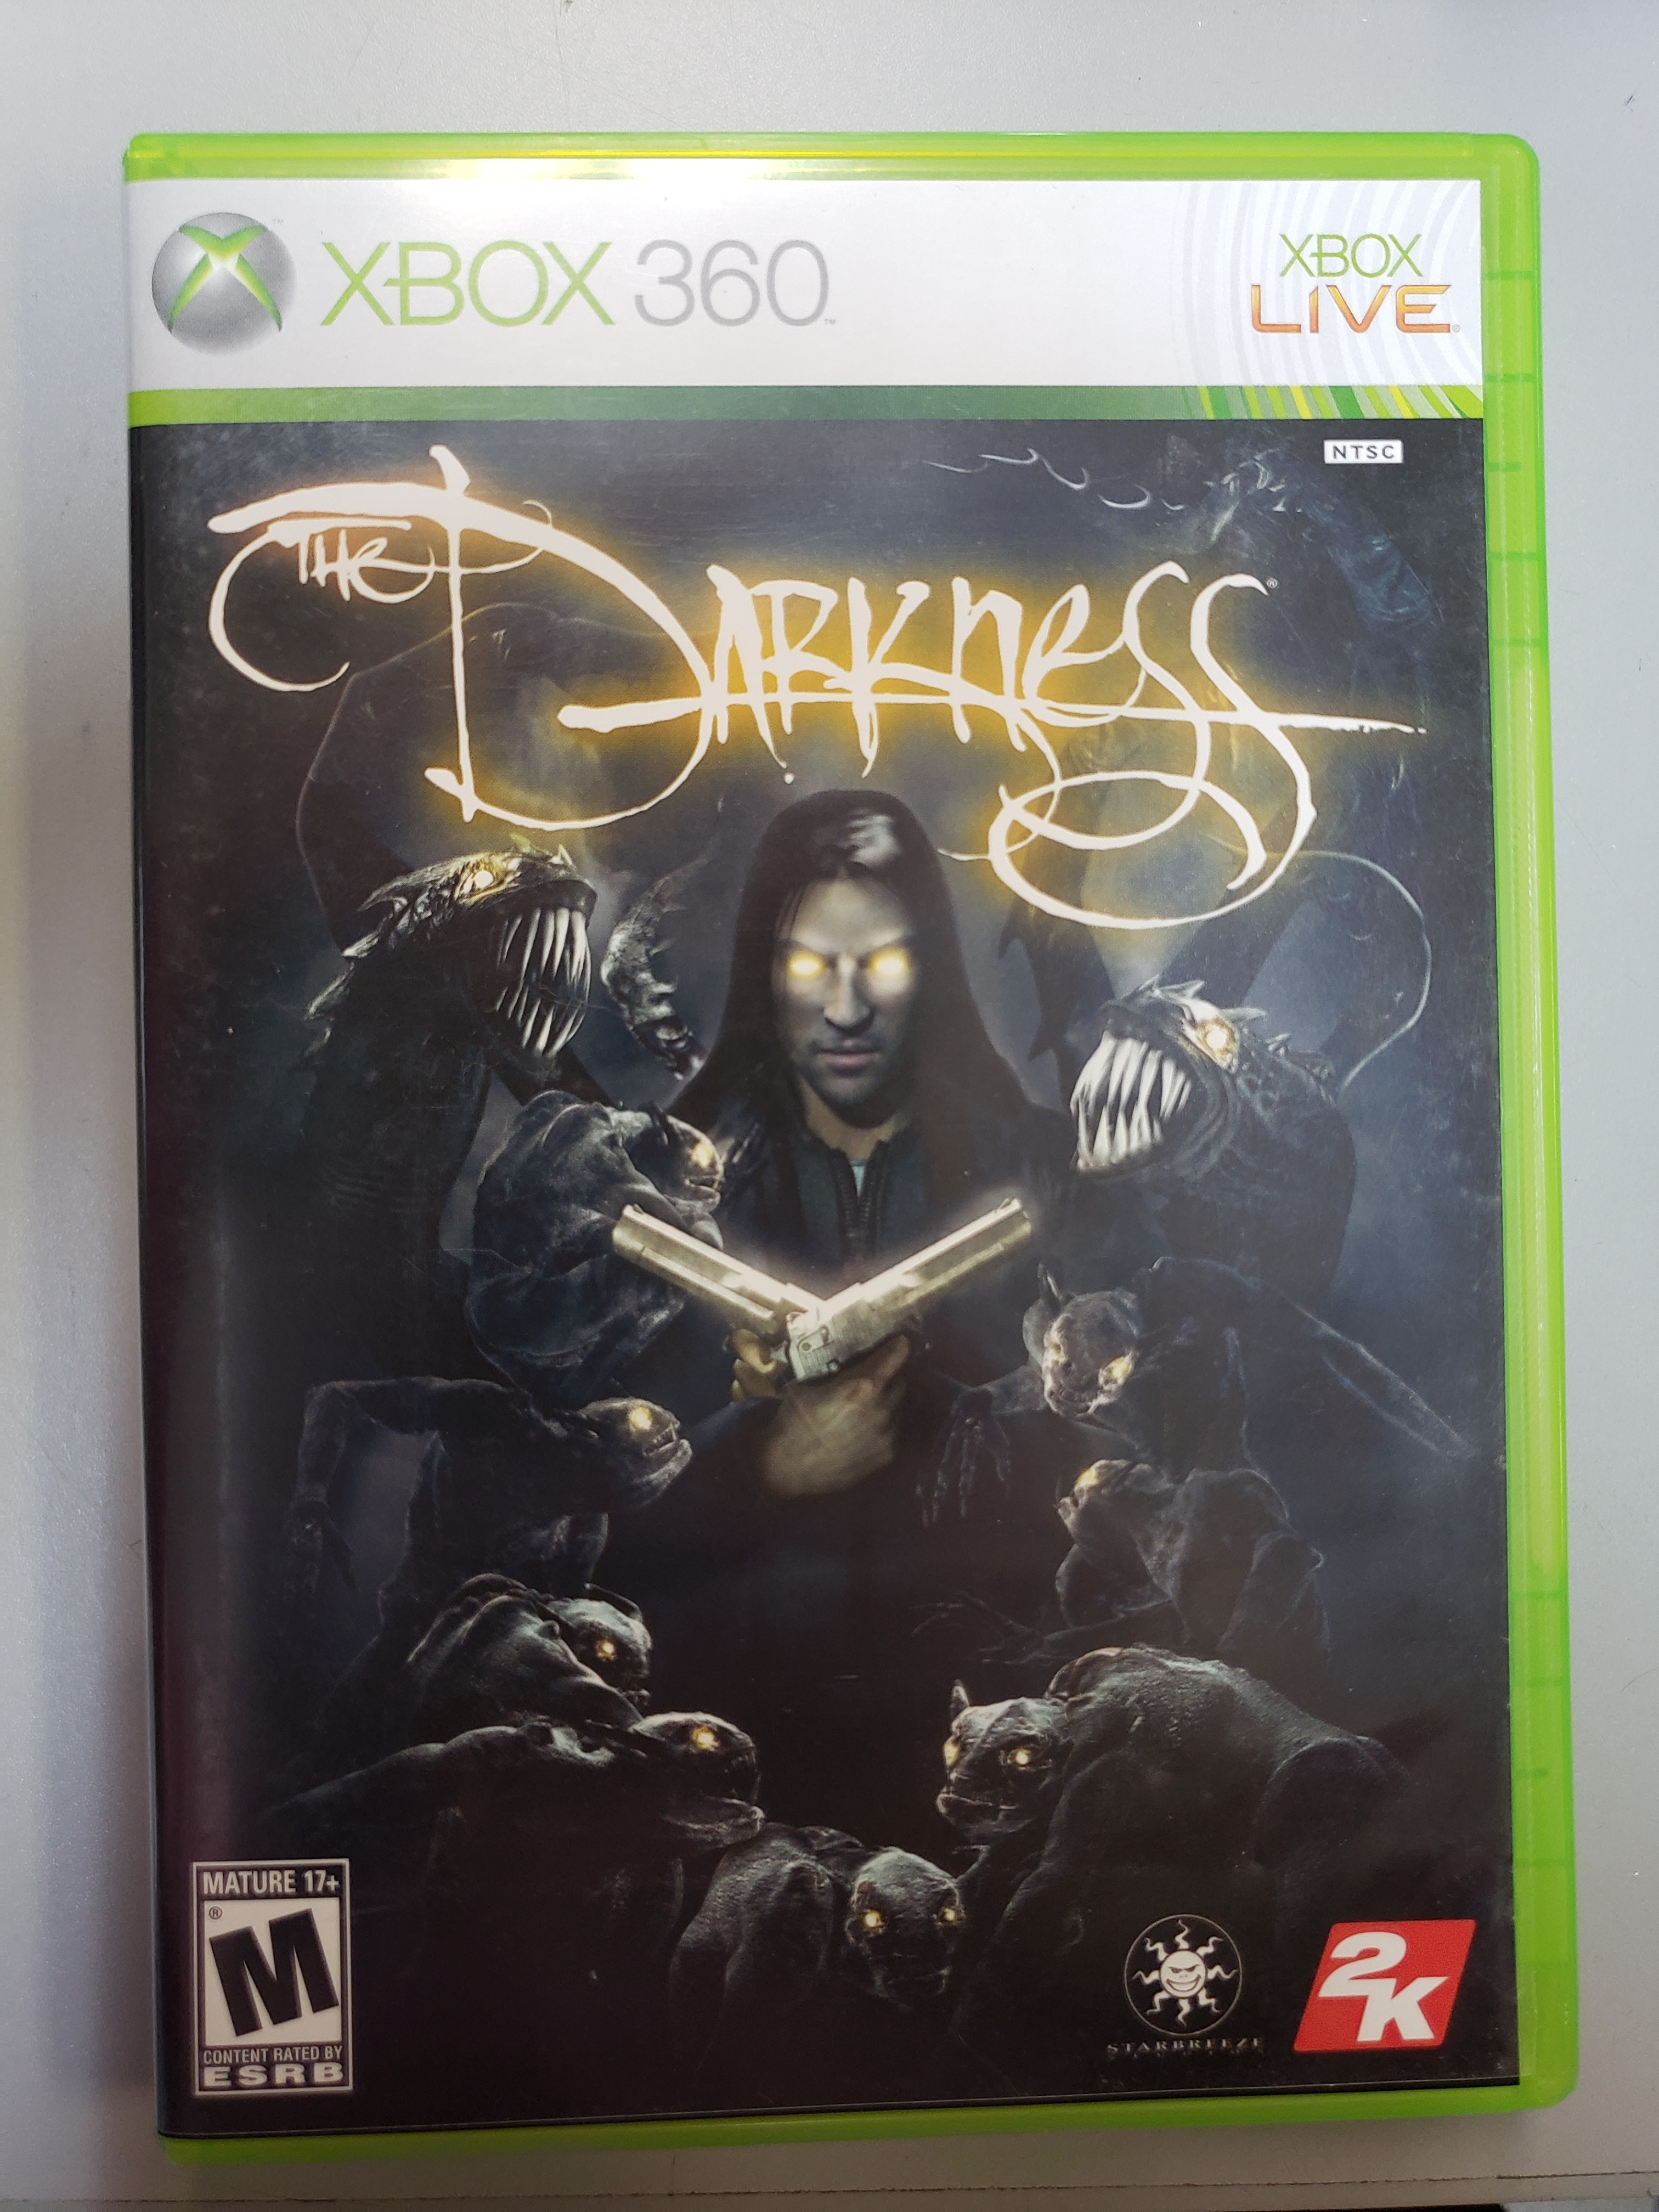 THE DARKNESS - XBOX 360 GAME